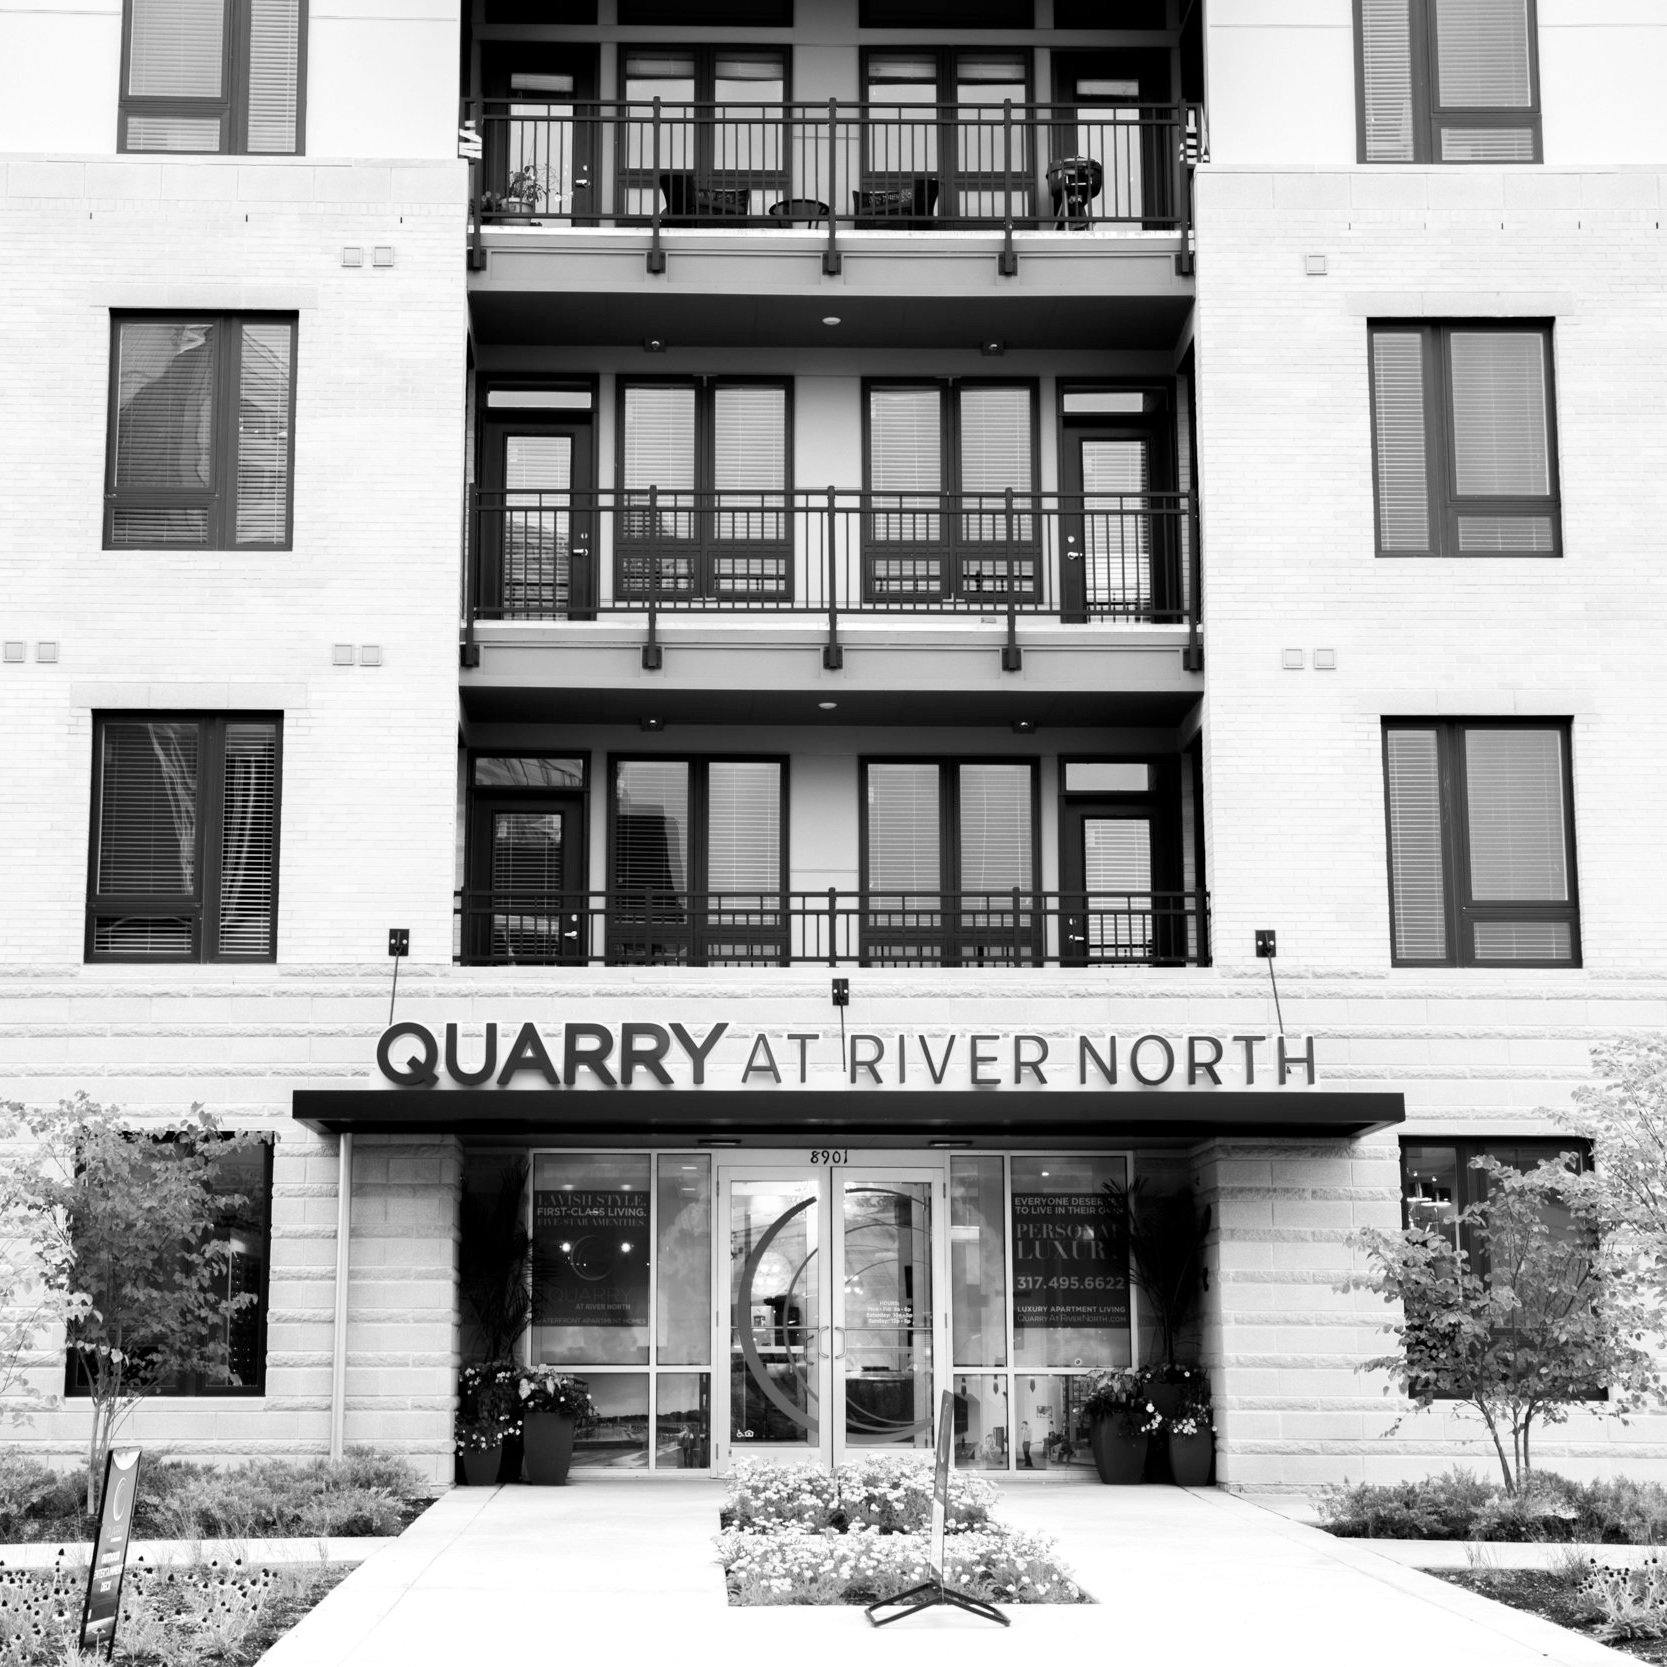 Quarry at River North